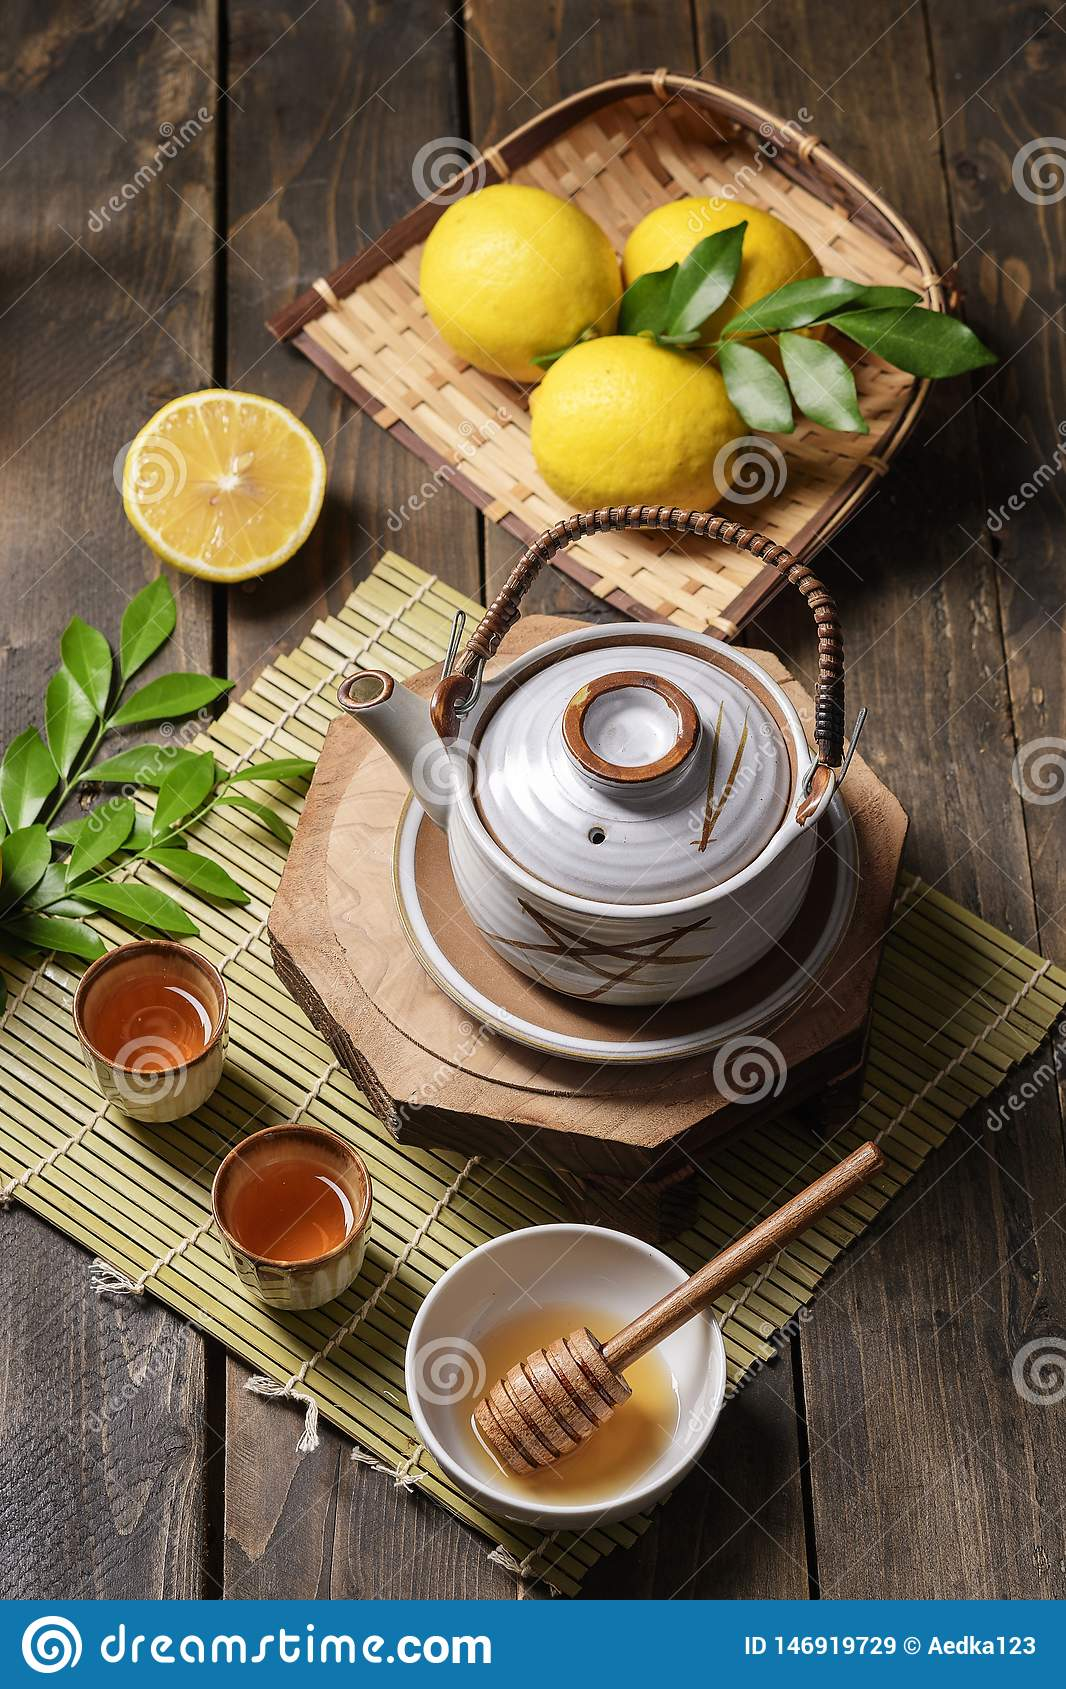 Hot tea with lemon and natural honey, good treat to have vitamins and strong immunity